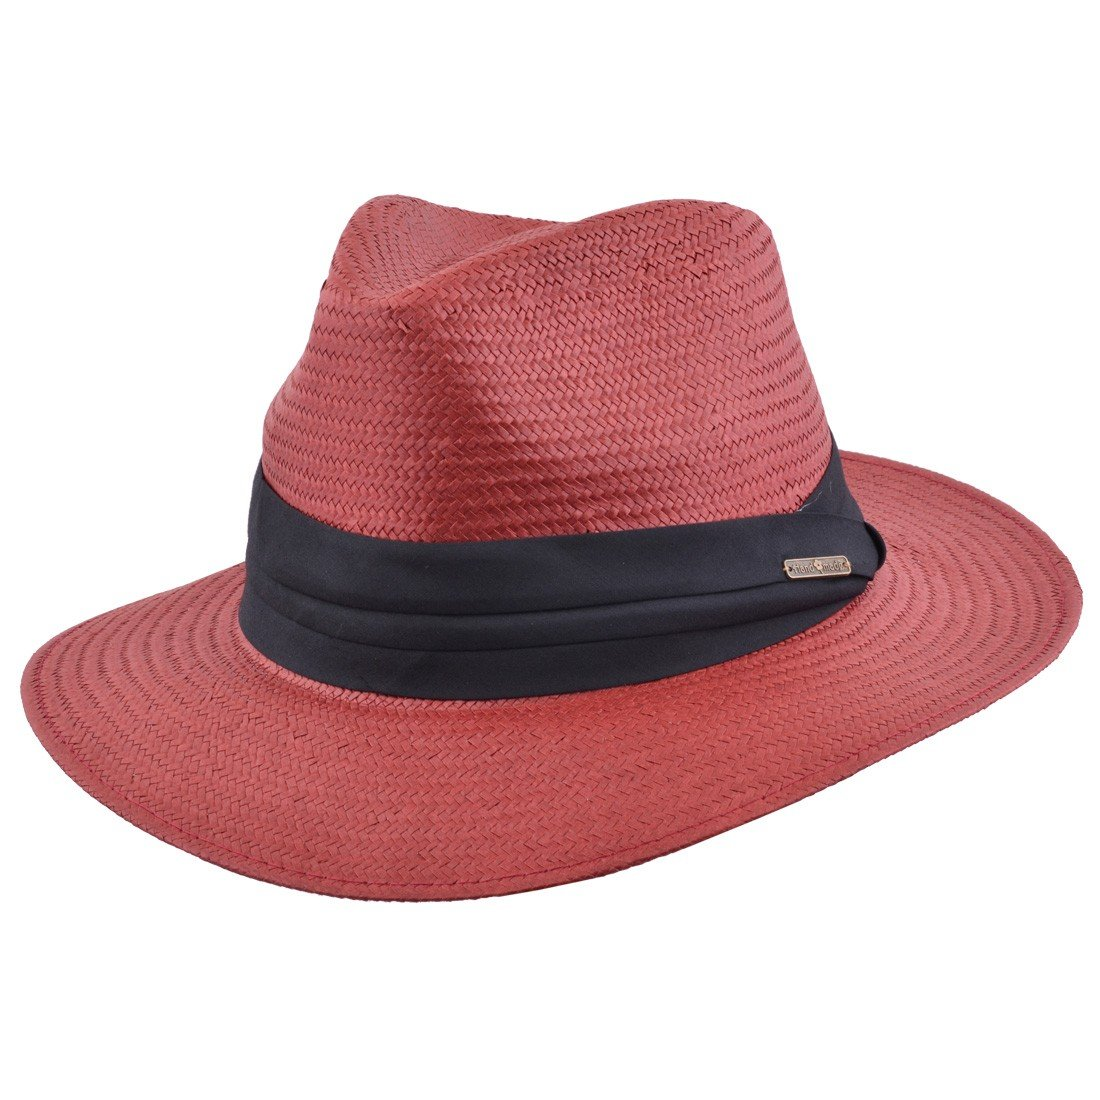 Unisex Paper Straw Crushable Foldable Summer Panama Fedora Hat With Band And Adjustable Sweatband